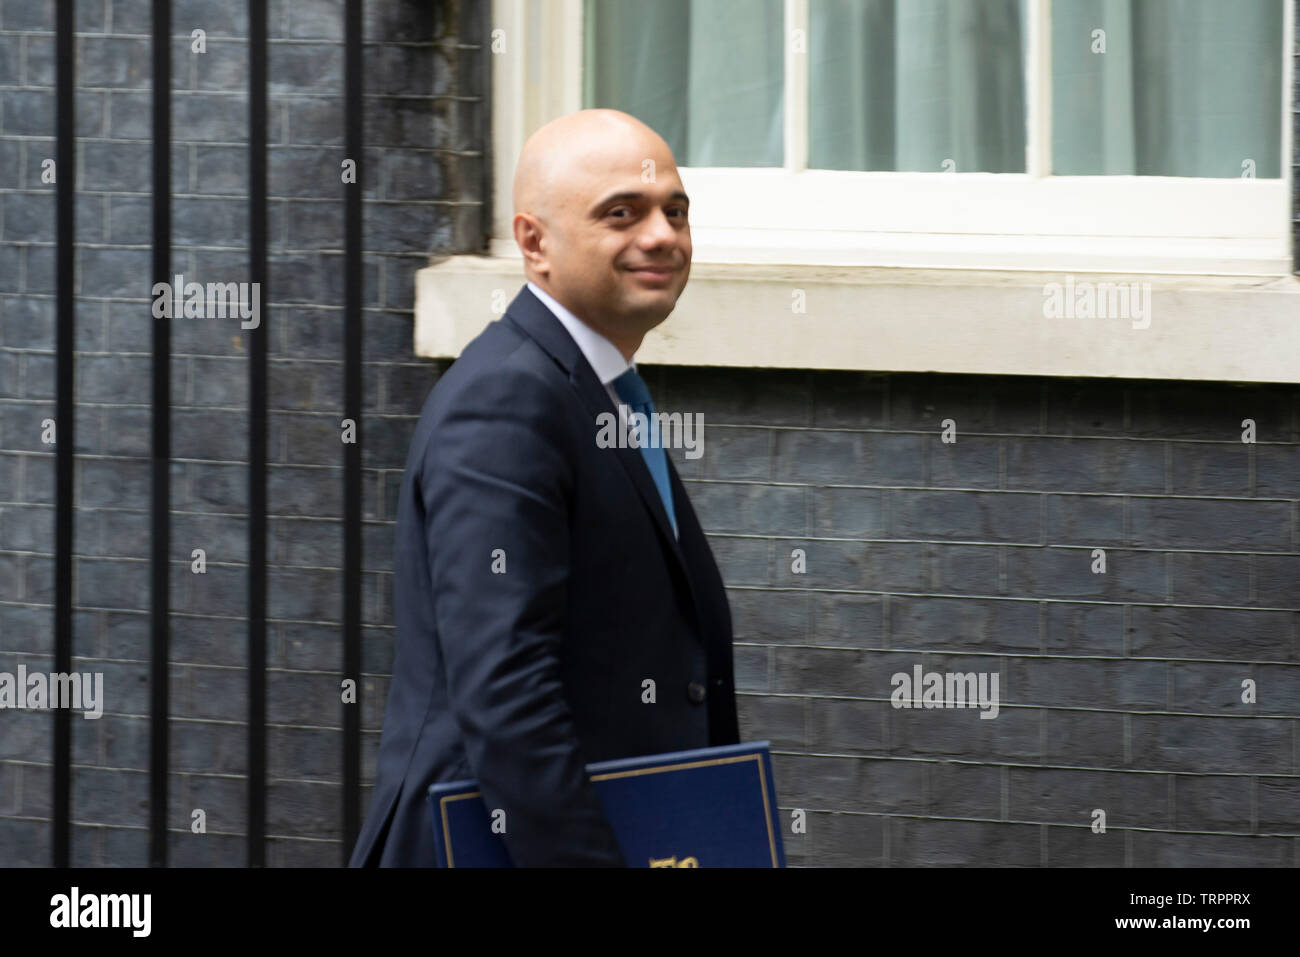 London, UK. 11th June, 2019. Home Secretary Sajid Javid leaves Downing Street following a cabinet meeting. Credit: Claire Doherty/Alamy Live News Stock Photo